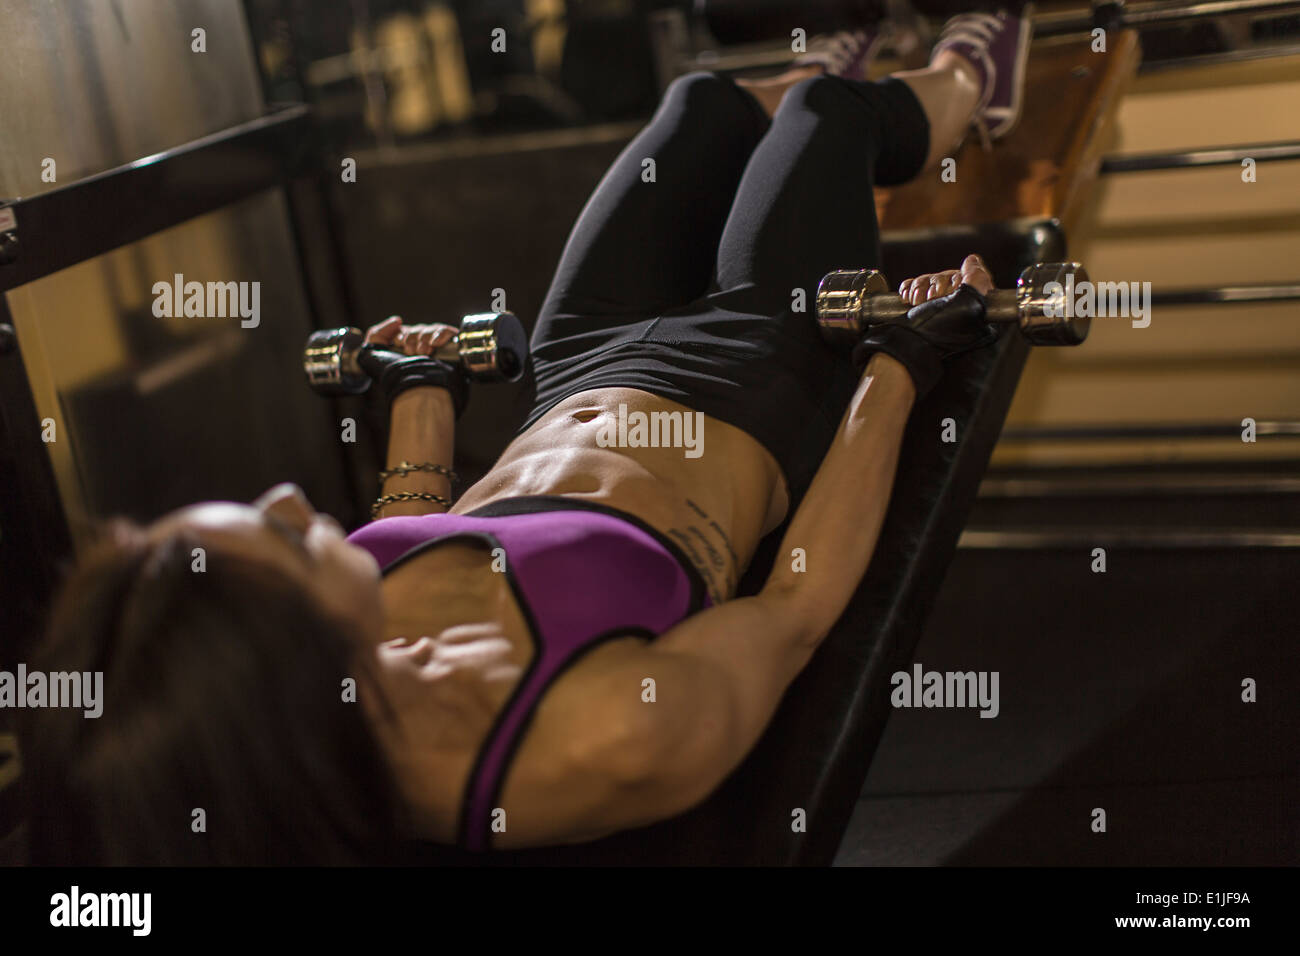 Mid adult woman using dumbbells on weight bench Stock Photo